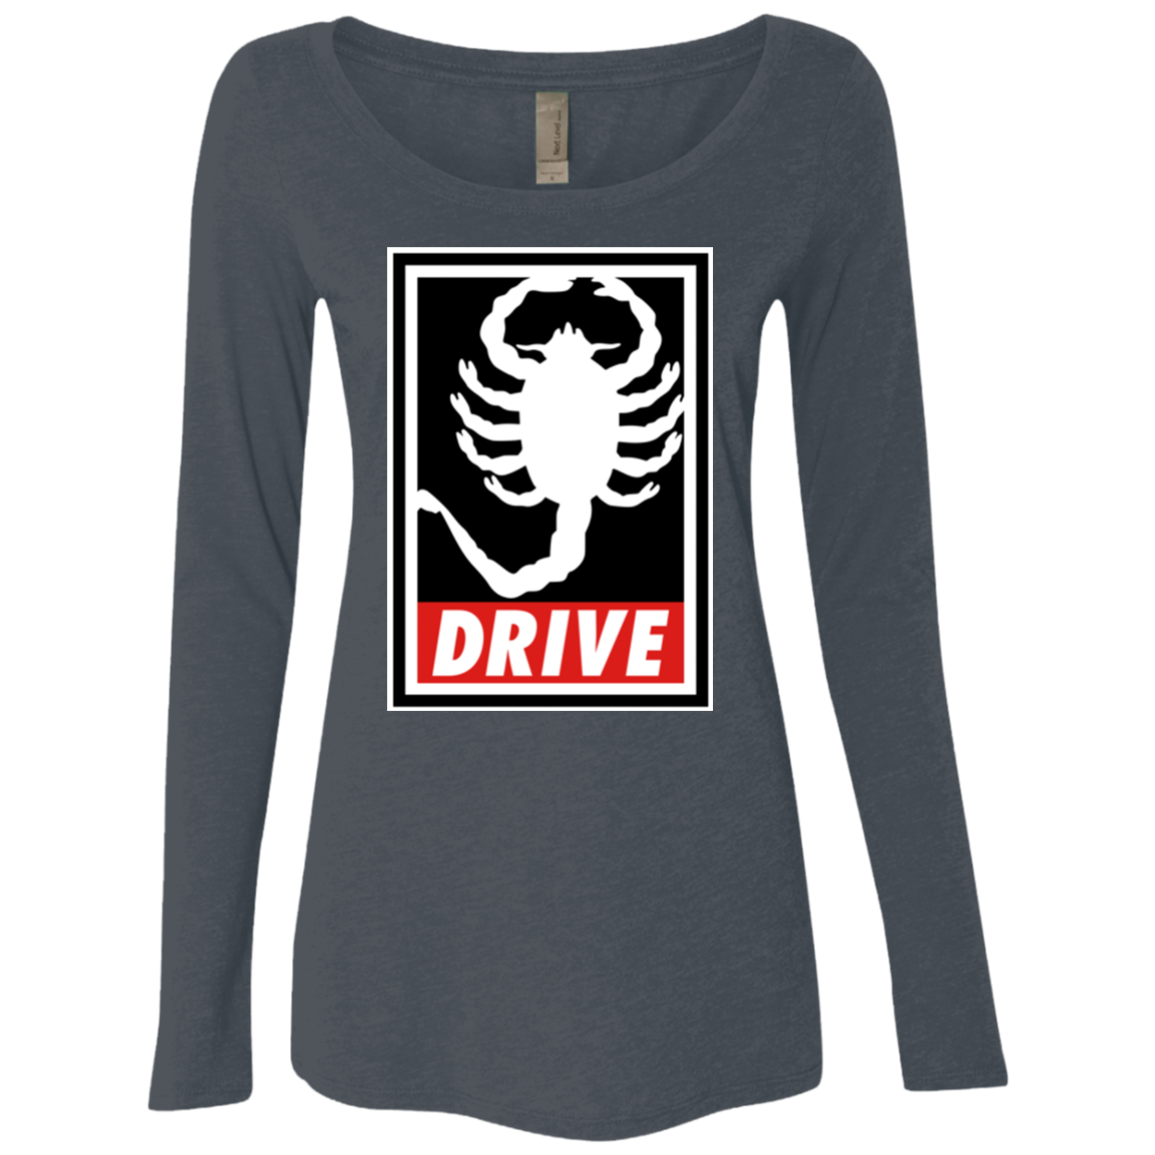 Obey and drive Women's Triblend Long Sleeve Shirt